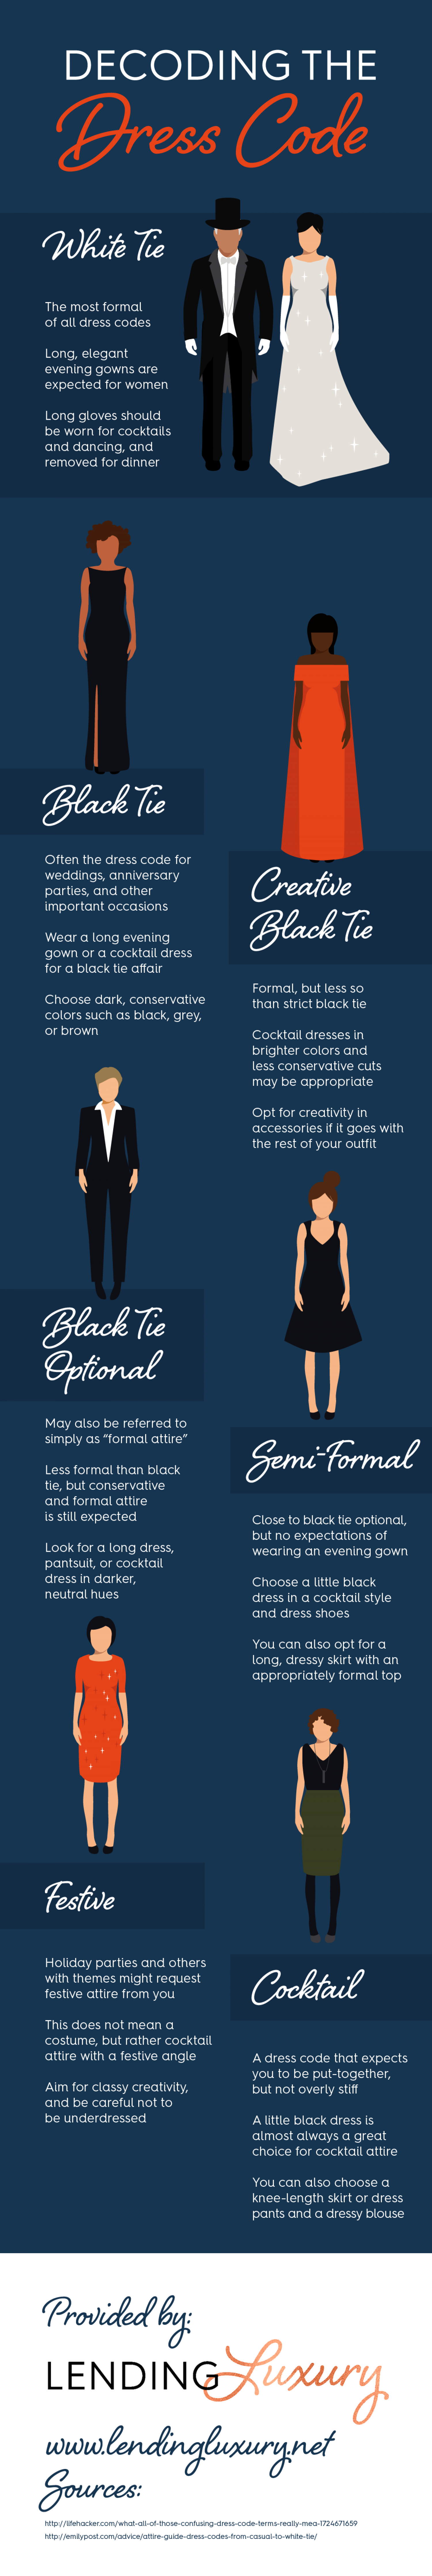 Decoding the Dress Code